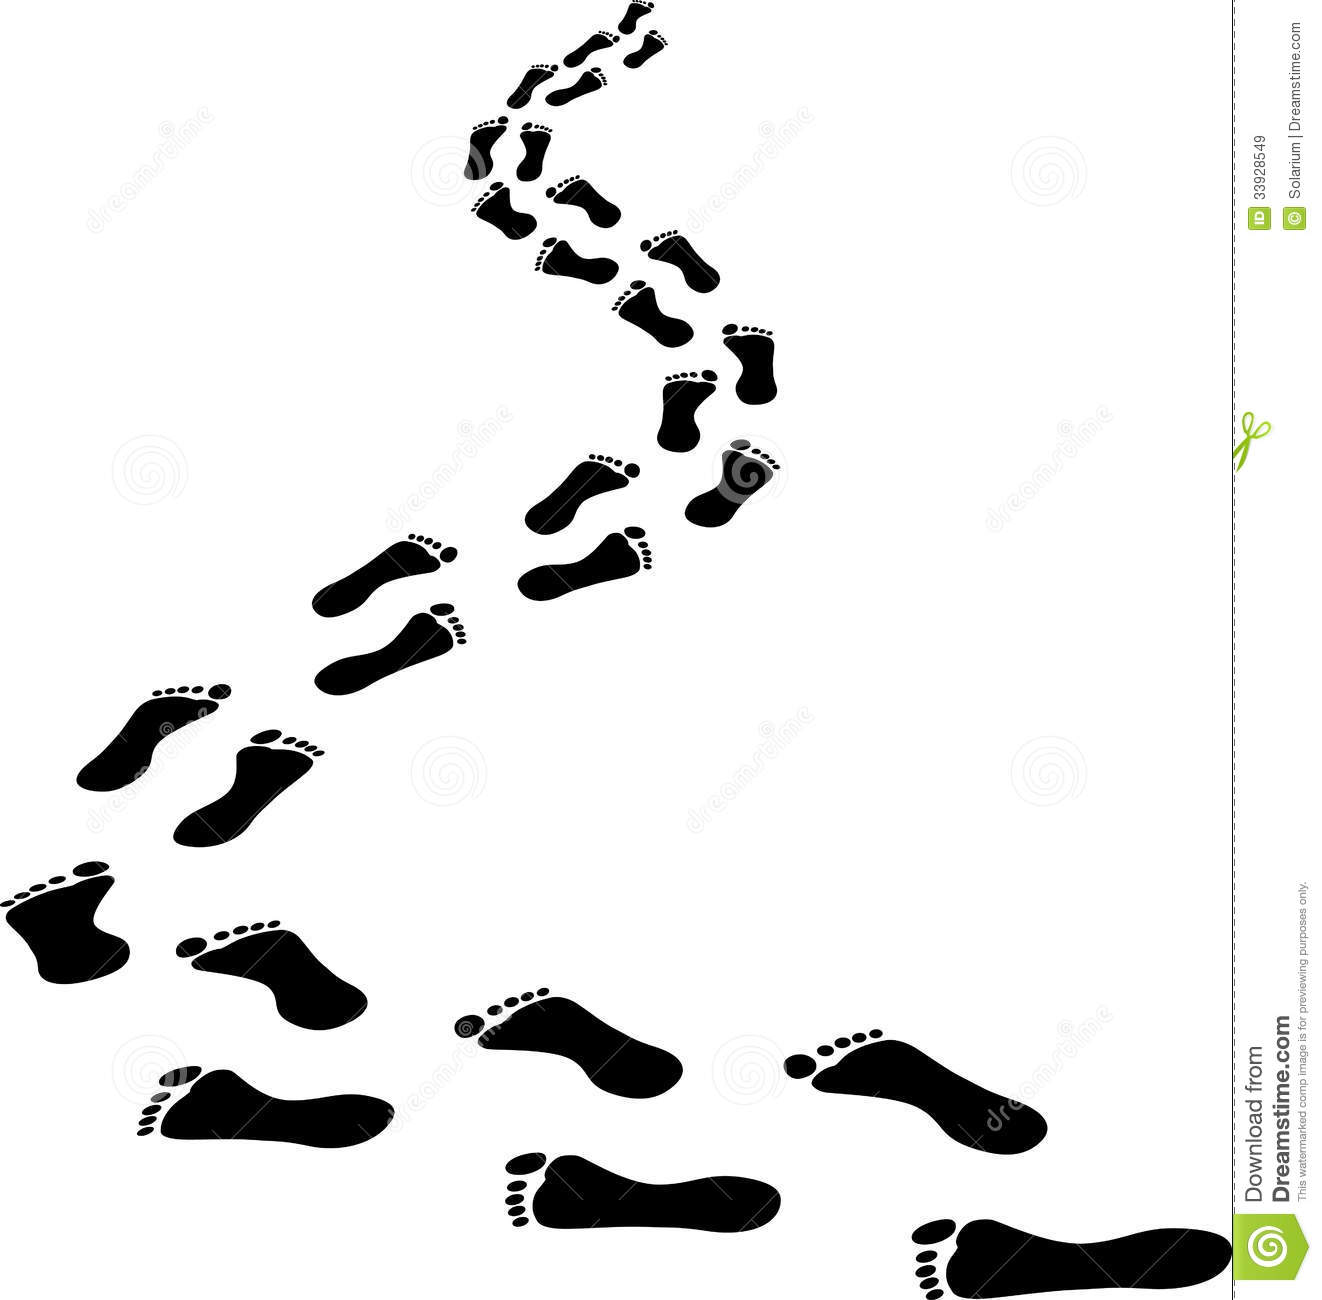 Footsteps clipart.